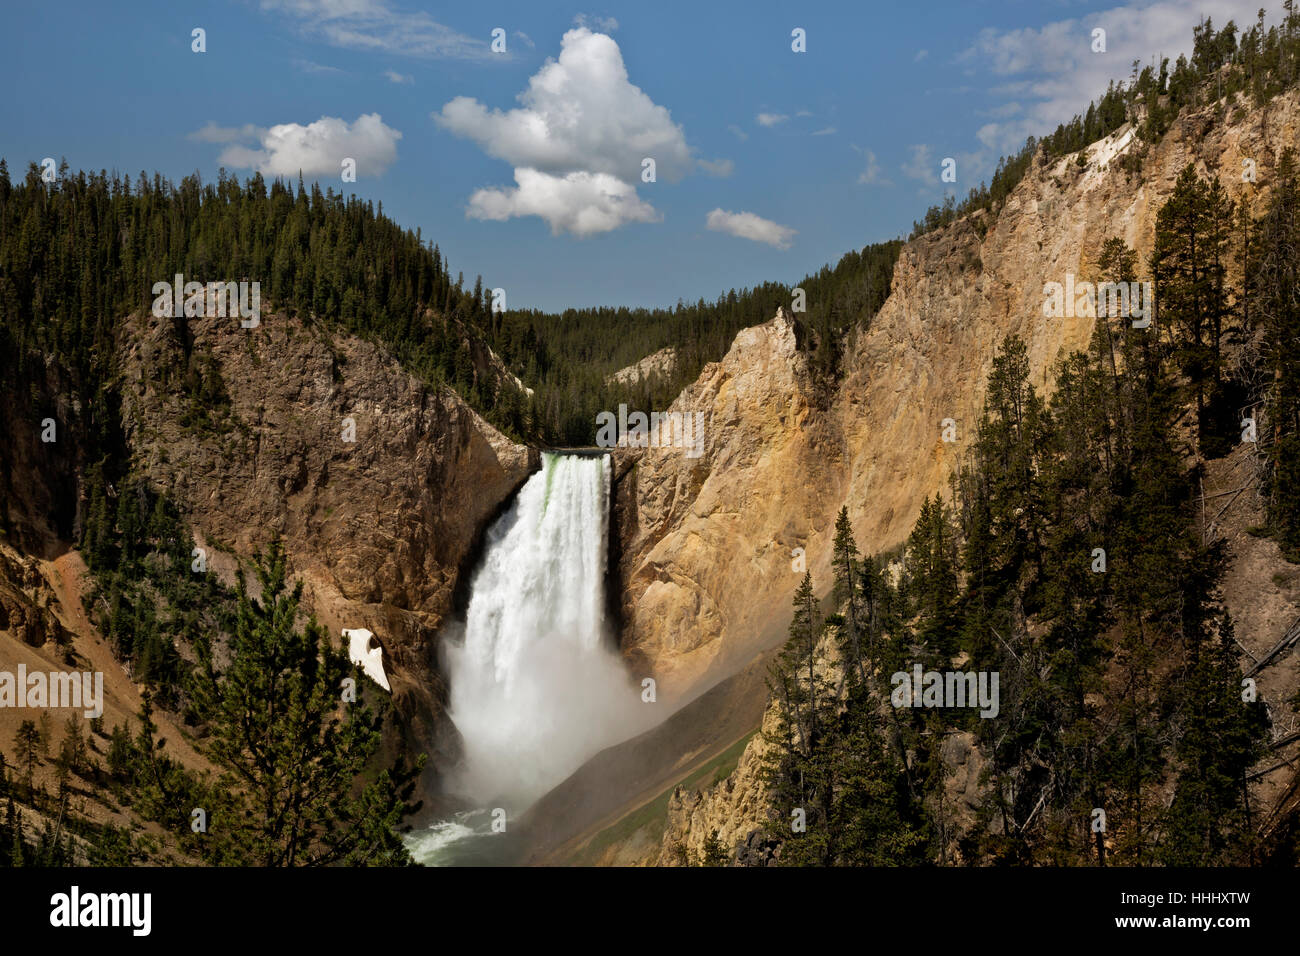 WY02099-00...WASHINGTON - Lower Falls in the Grand Canyon of the Yellowstone River in Yellowstone National Park. - Stock Image